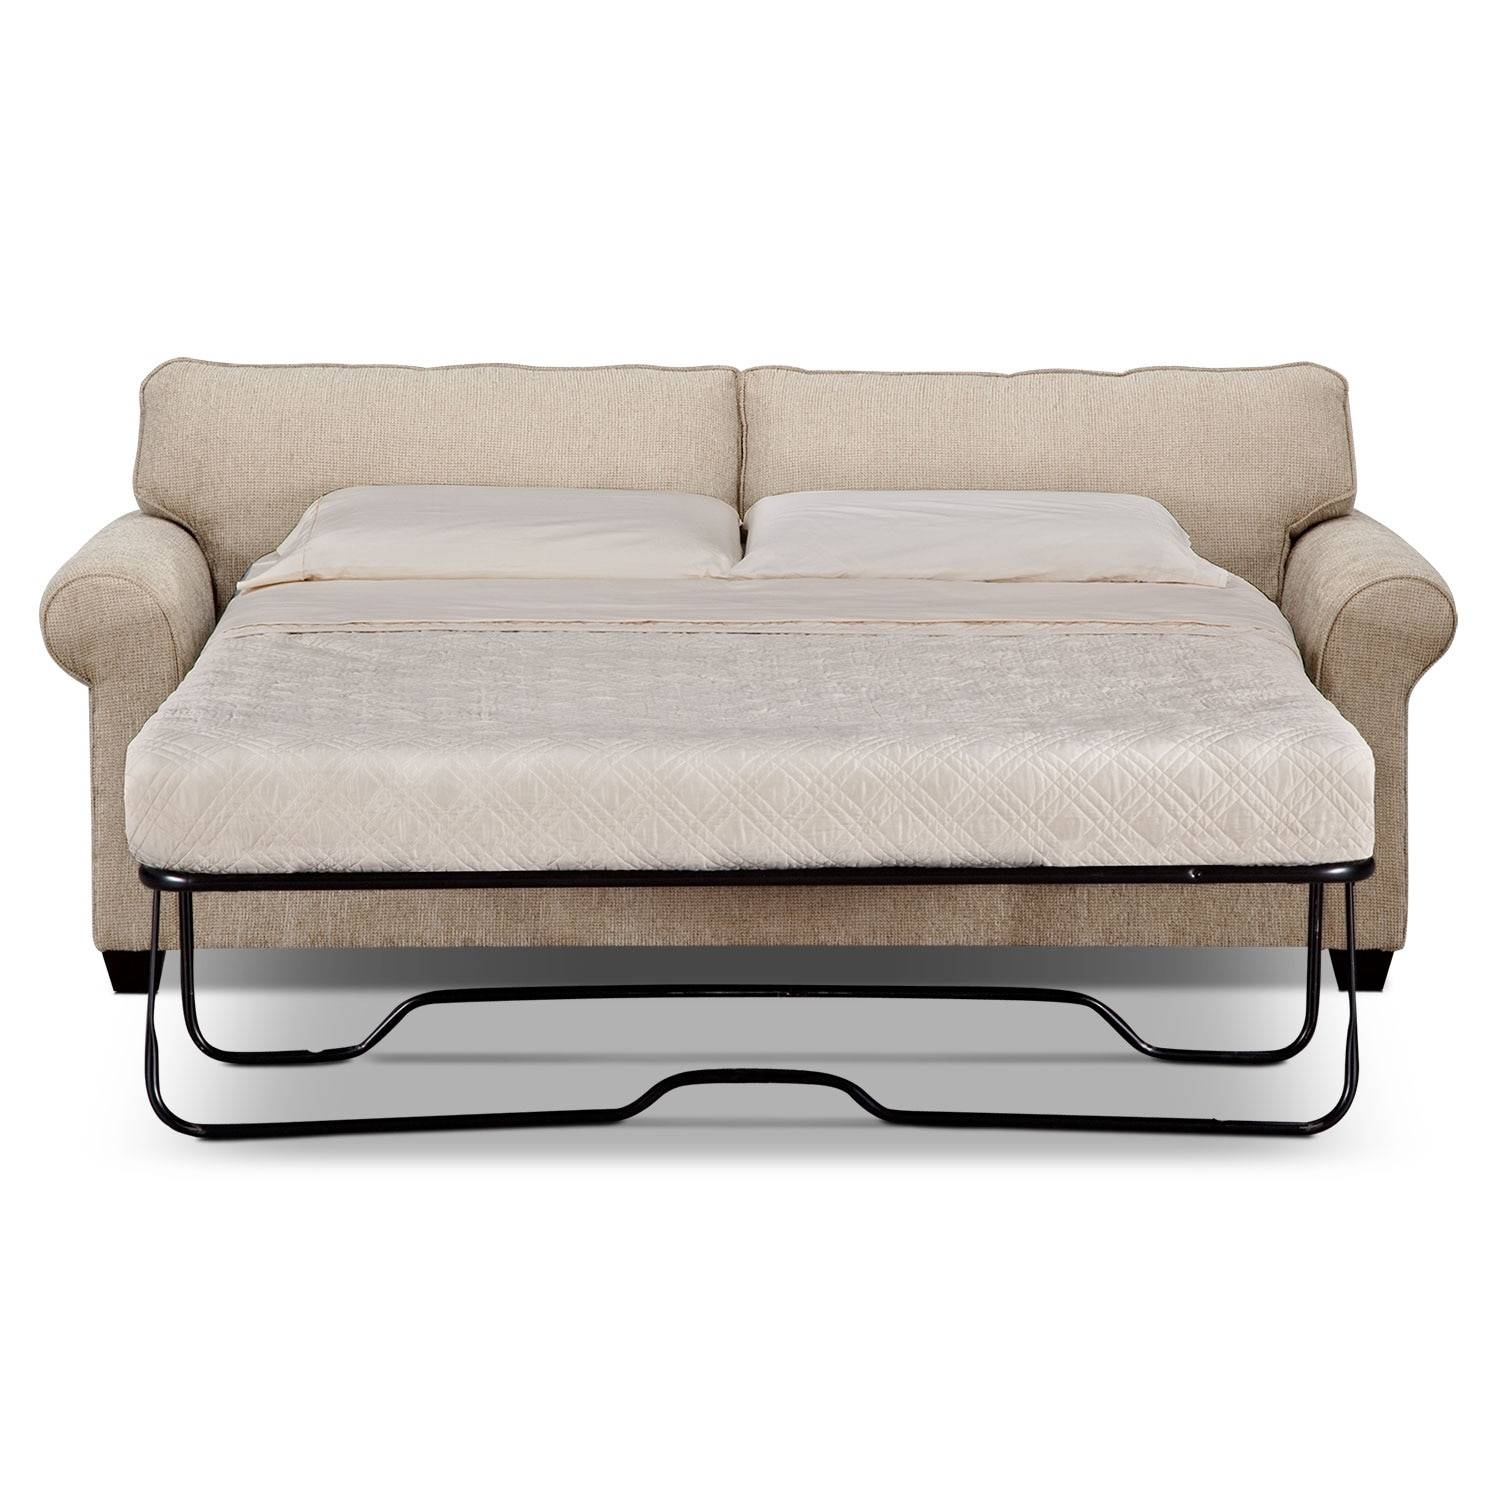 Fletcher Queen Memory Foam Sleeper Sofa - Beige | Value City Furniture in Comfortable Convertible Sofas (Image 7 of 30)